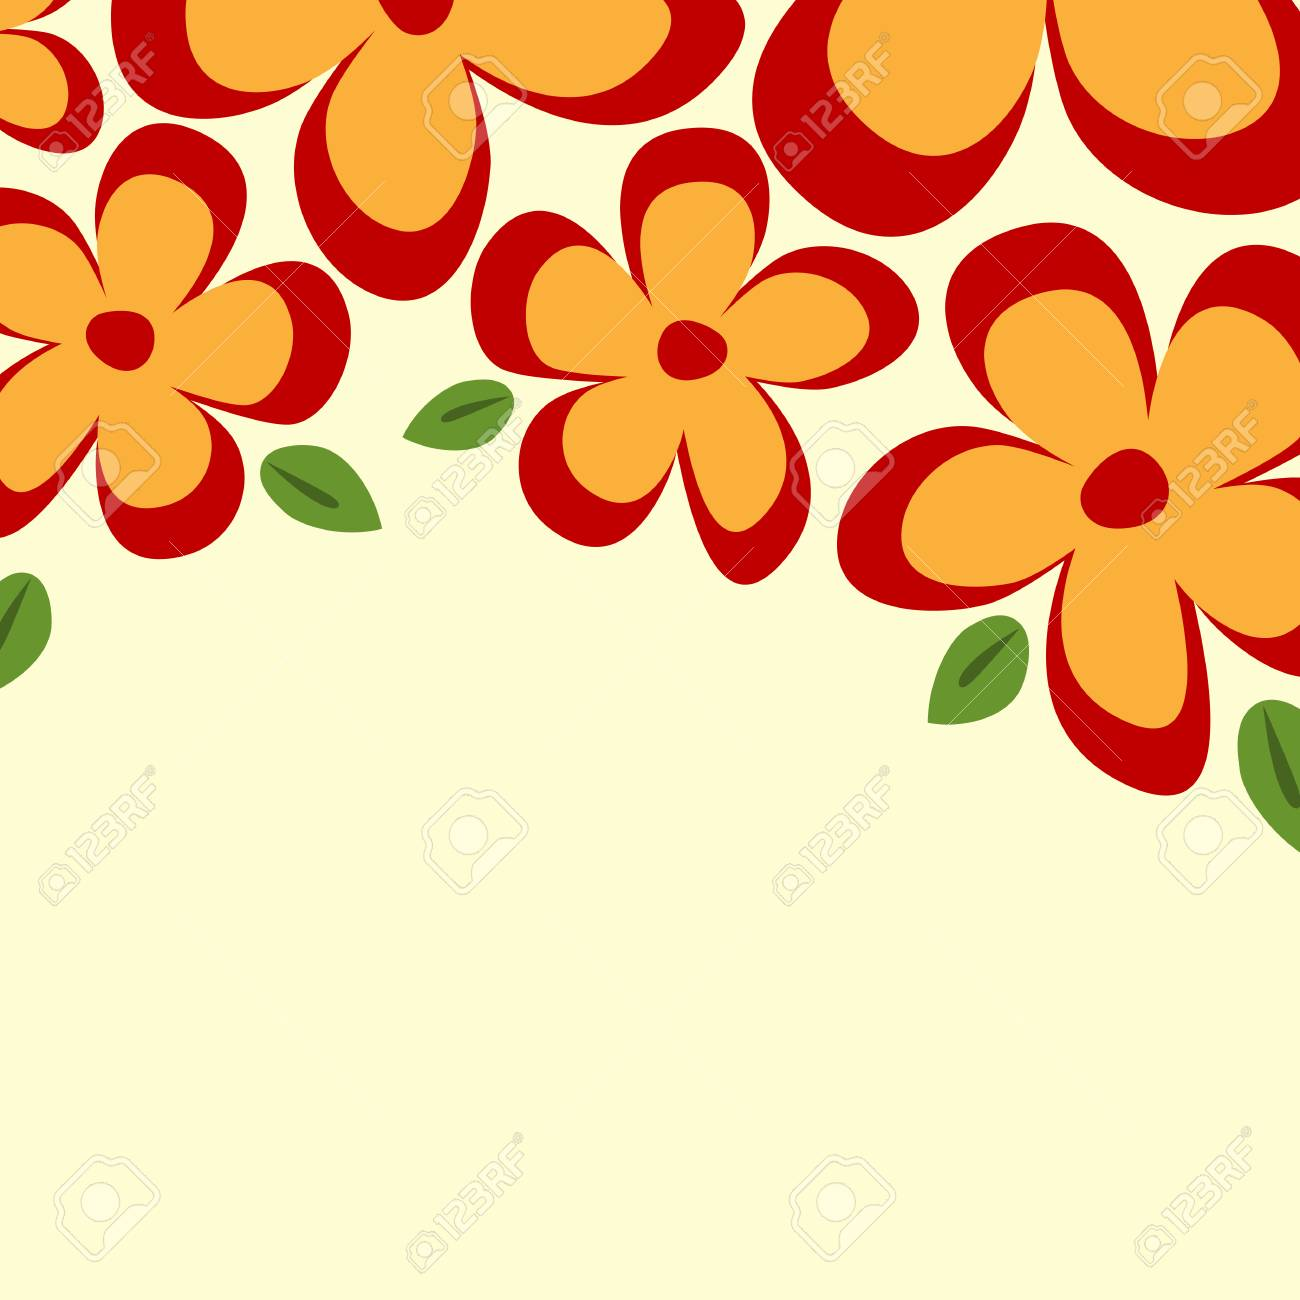 Yellow Logo With Red Flower Border Vector And Clip Art Inspiration